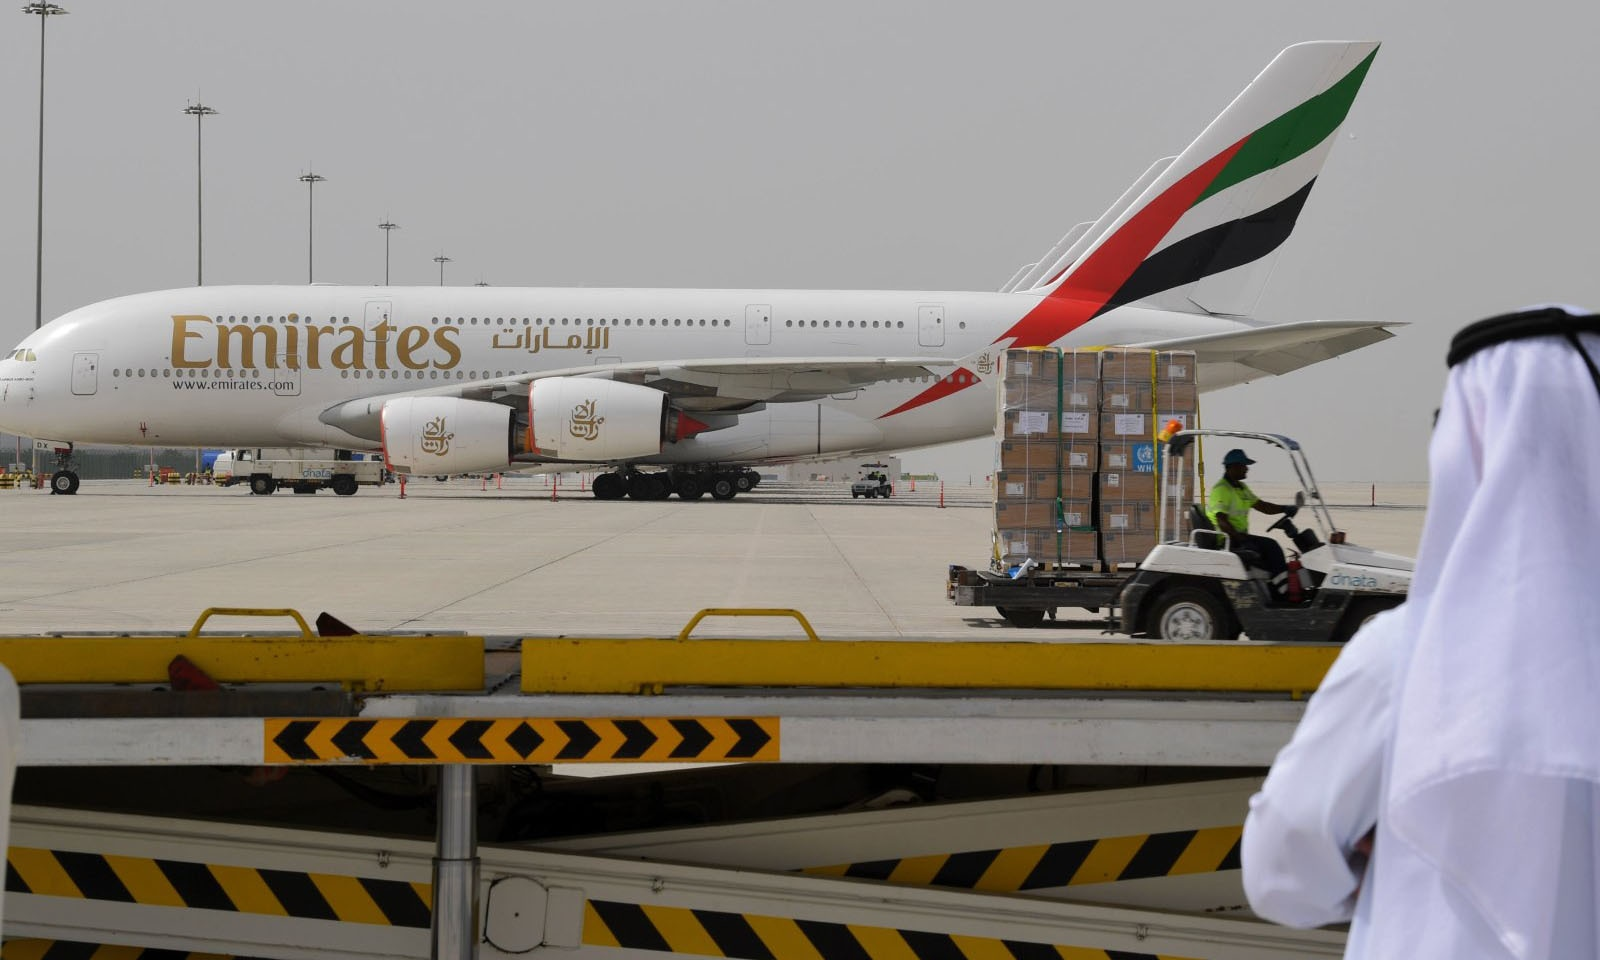 Emirates said UAE Nationals, holders of UAE Golden Visas and members of diplomatic missions who comply with updated Covid‑19 protocols, are exempt and may be accepted for travel. — AFP/File